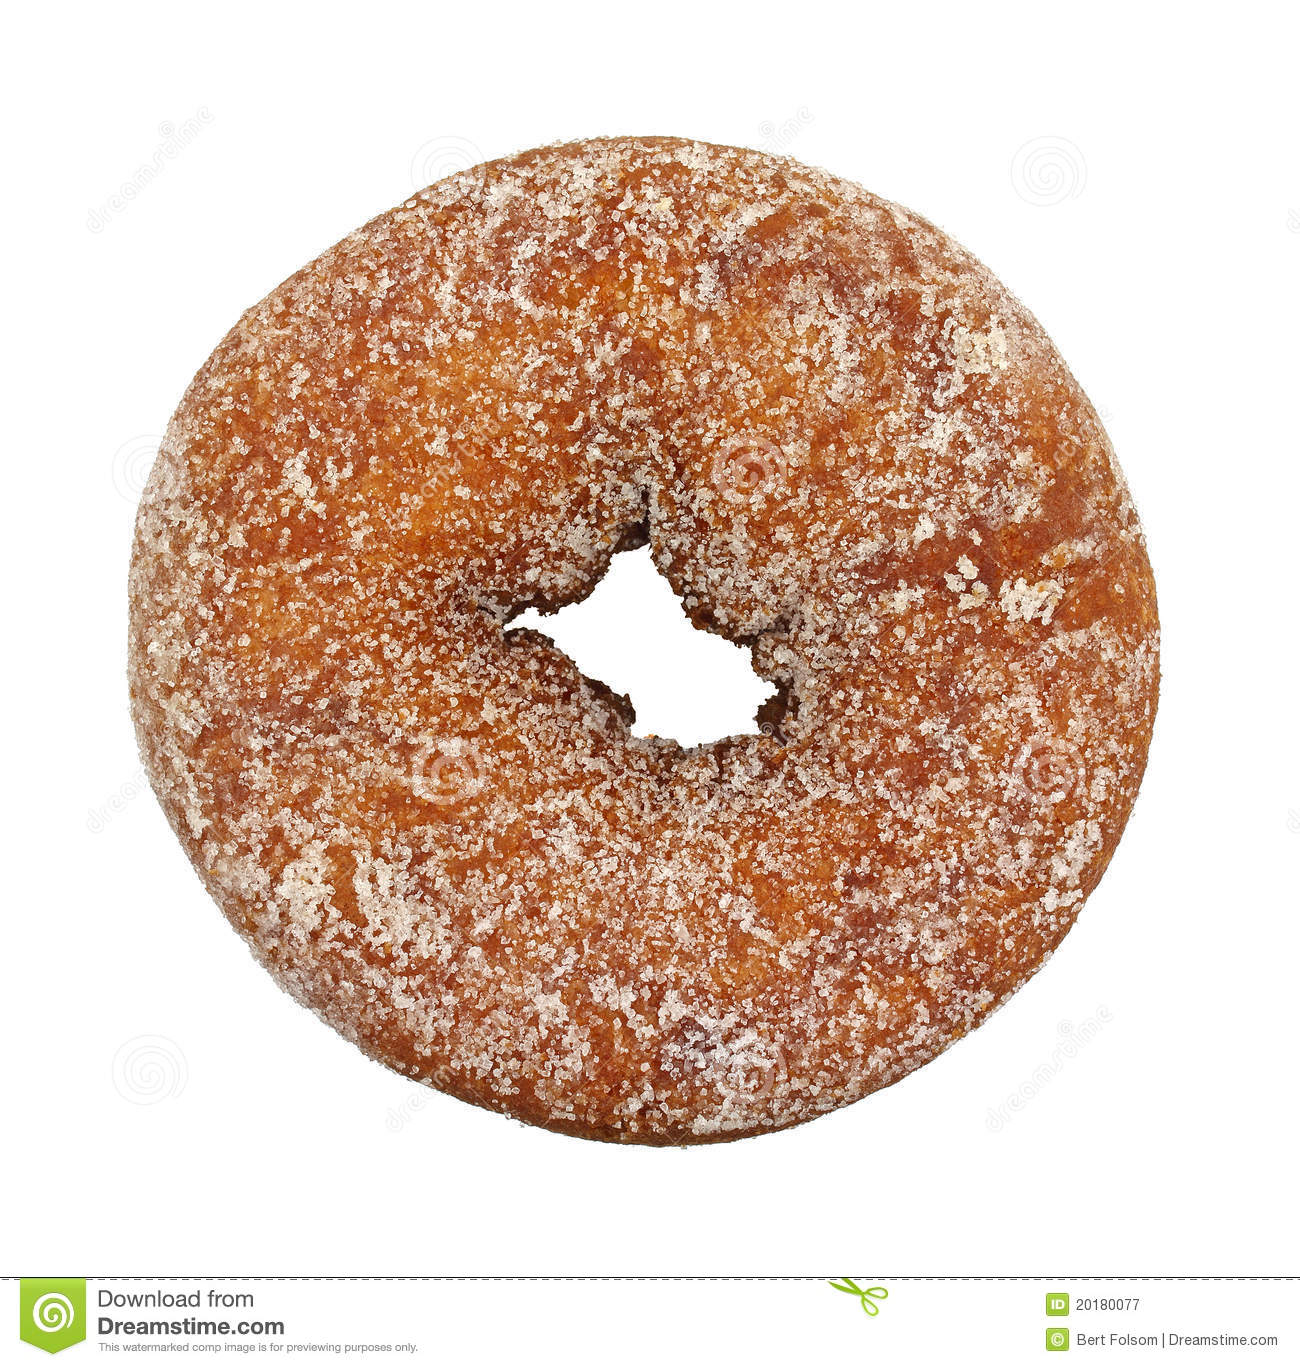 Plain Sugar Cake Doughnut Royalty Free Stock Photography - Image ...